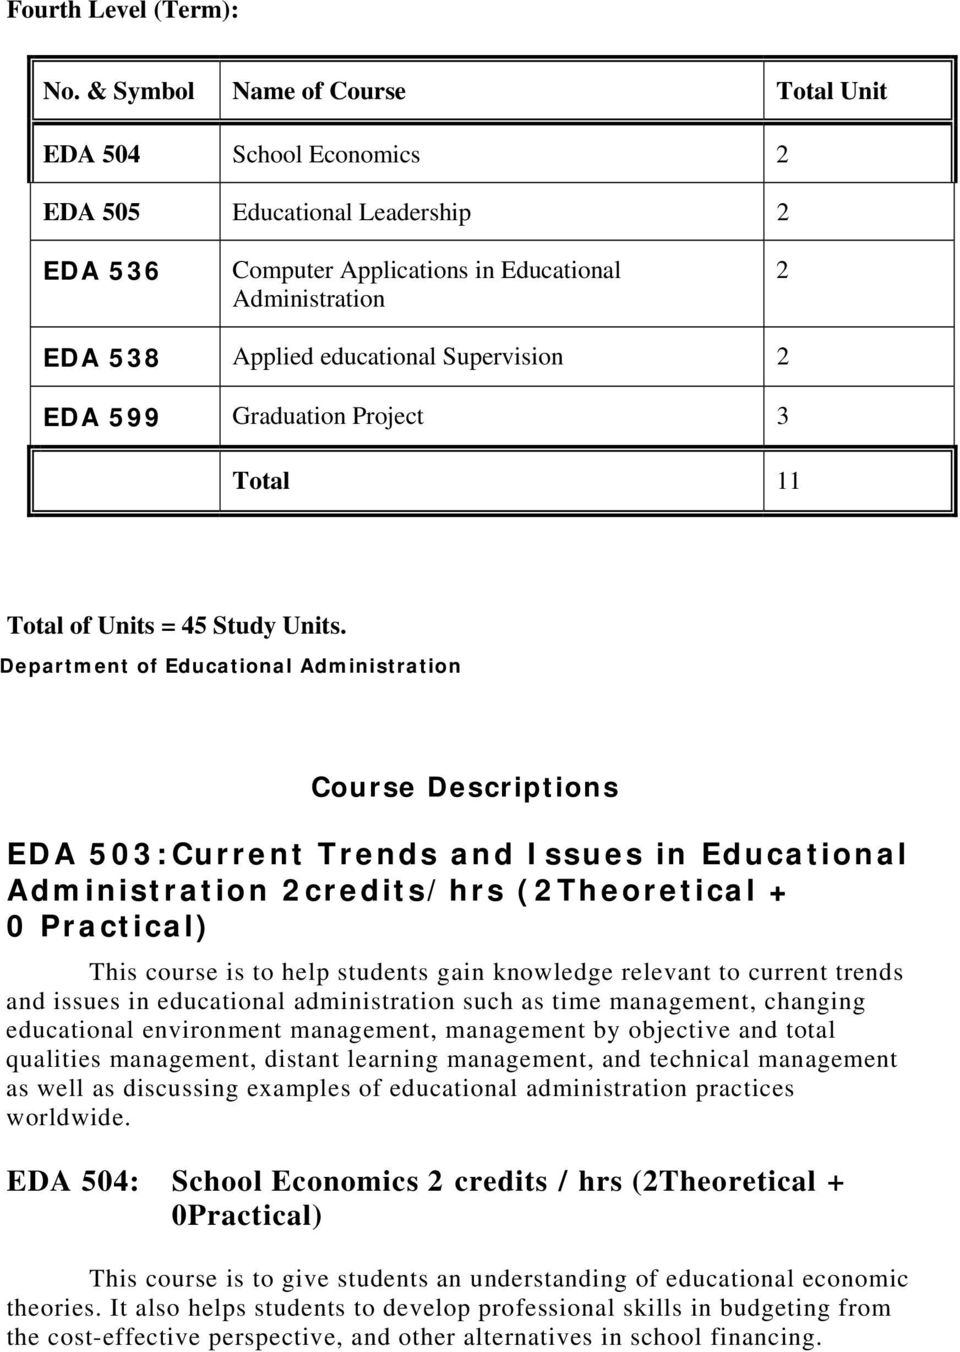 Department of Educational Administration Course Descriptions EDA 503: Current Trends and Issues in Educational Administration 2credits/hrs (2Theoretical + 0 Practical) This course is to help students